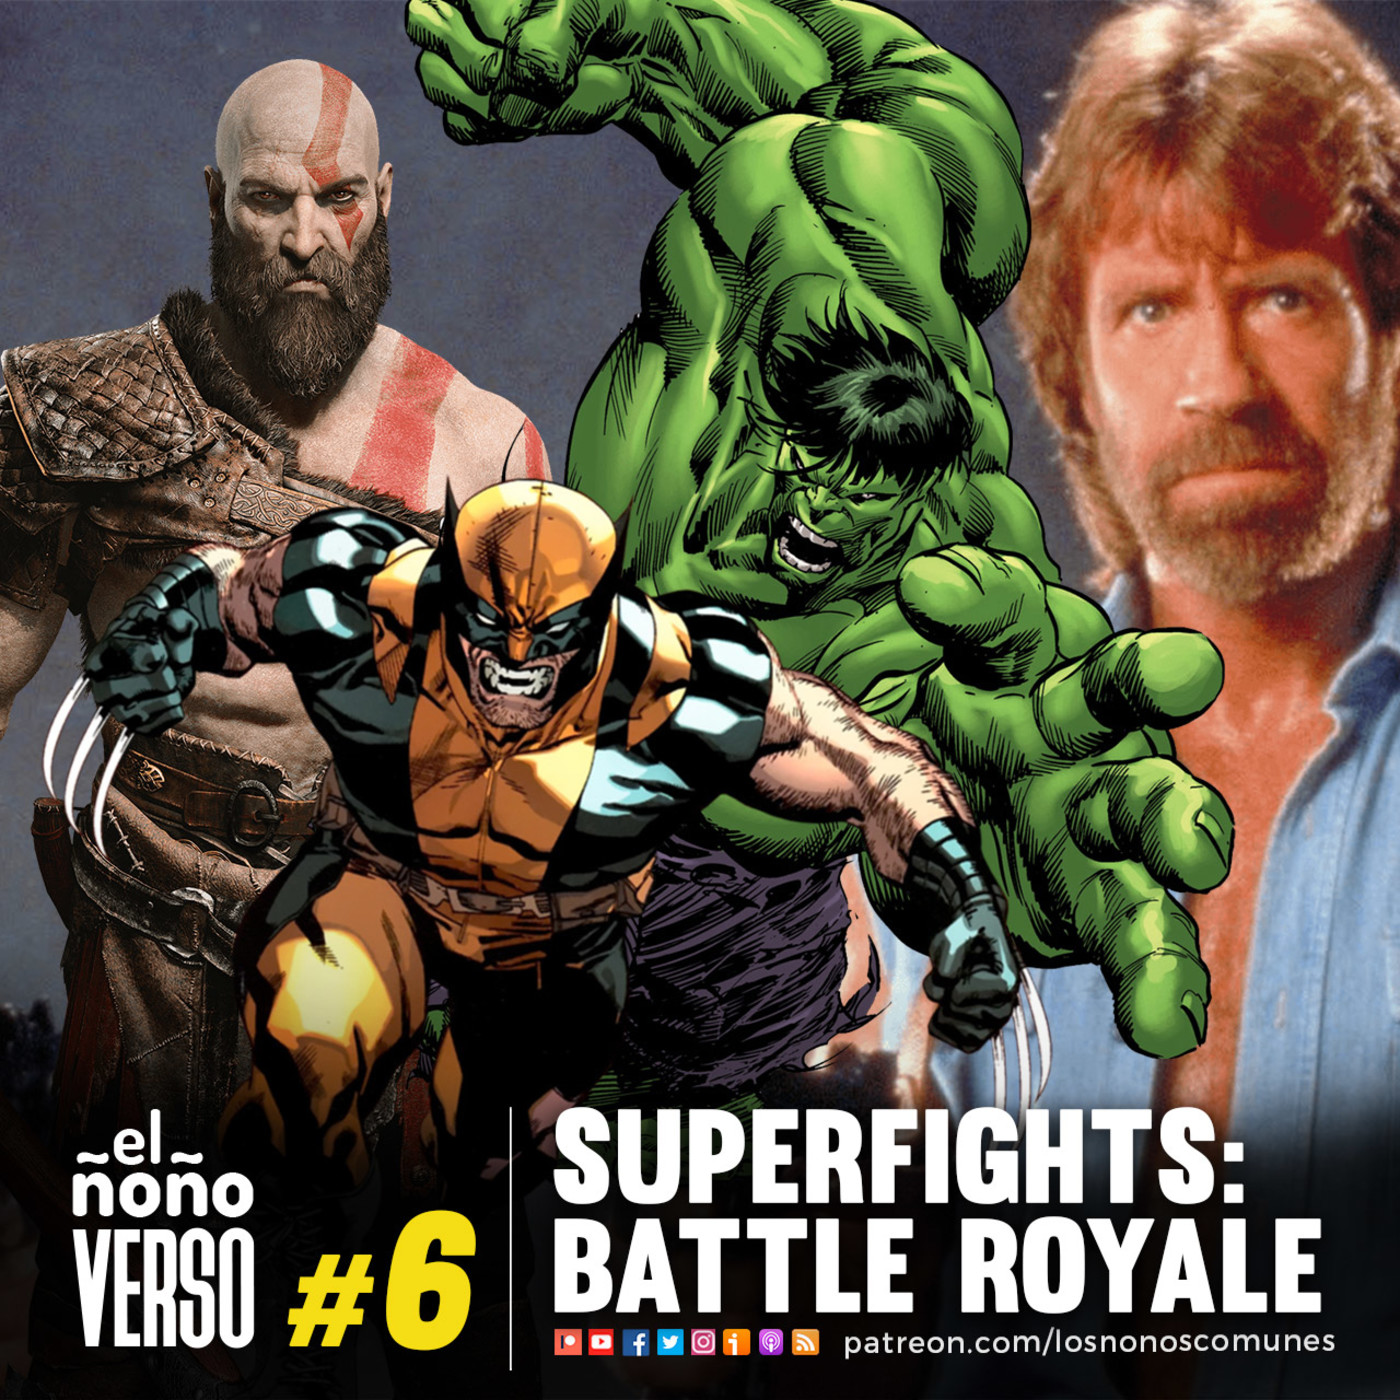 Ep 06: Superfights: Battle Royale